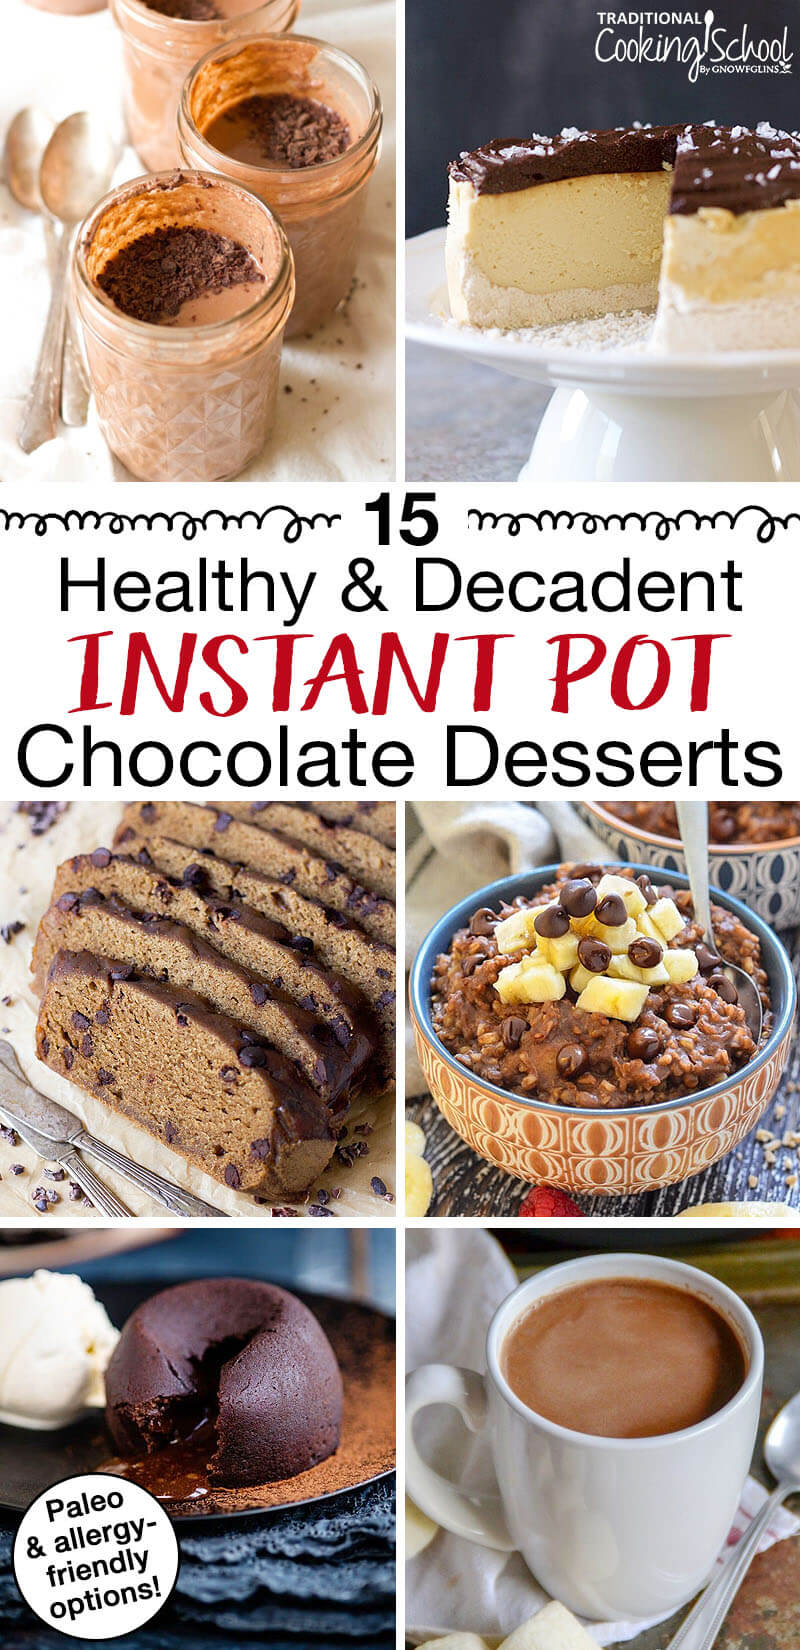 """photo collage of Instant Pot chocolate desserts including lava cakes, hot cocoa, and chocolate pudding with text overlay: """"15 Healthy & Decadent Instant Pot Chocolate Desserts"""""""